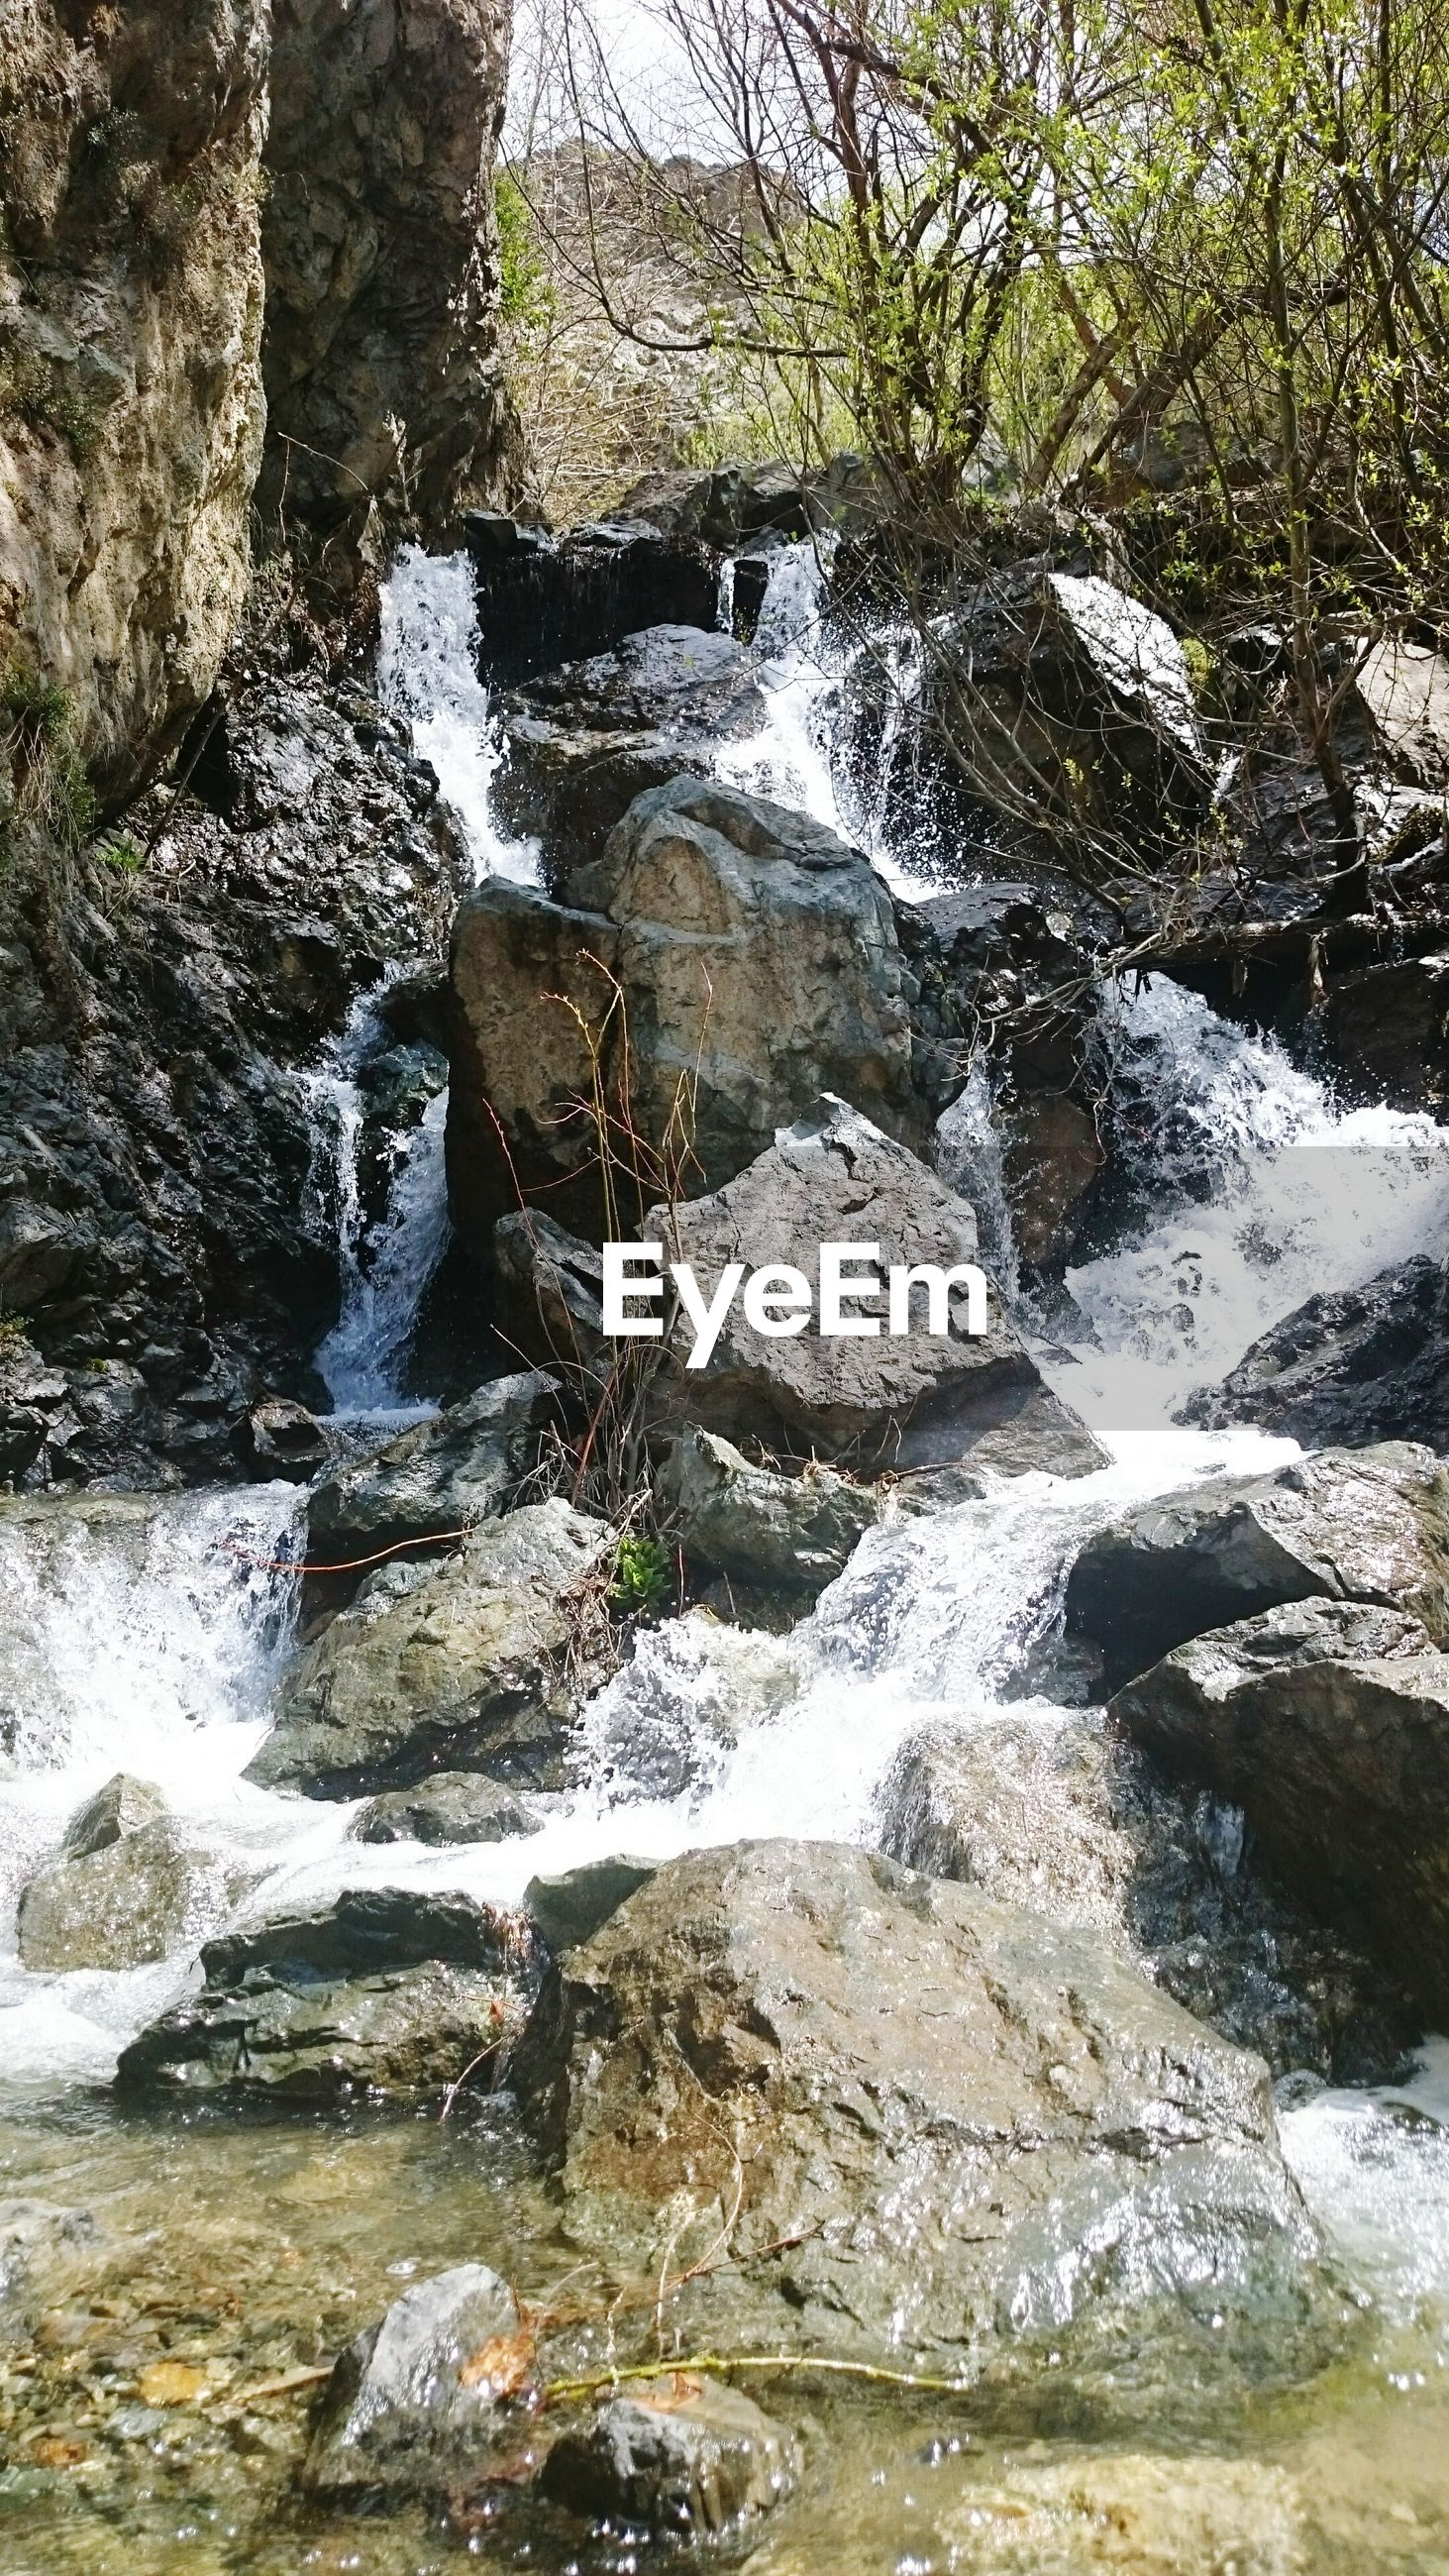 water, rock - object, flowing water, motion, nature, beauty in nature, stream, flowing, waterfall, scenics, rock, forest, tree, river, tranquility, rock formation, day, outdoors, long exposure, no people